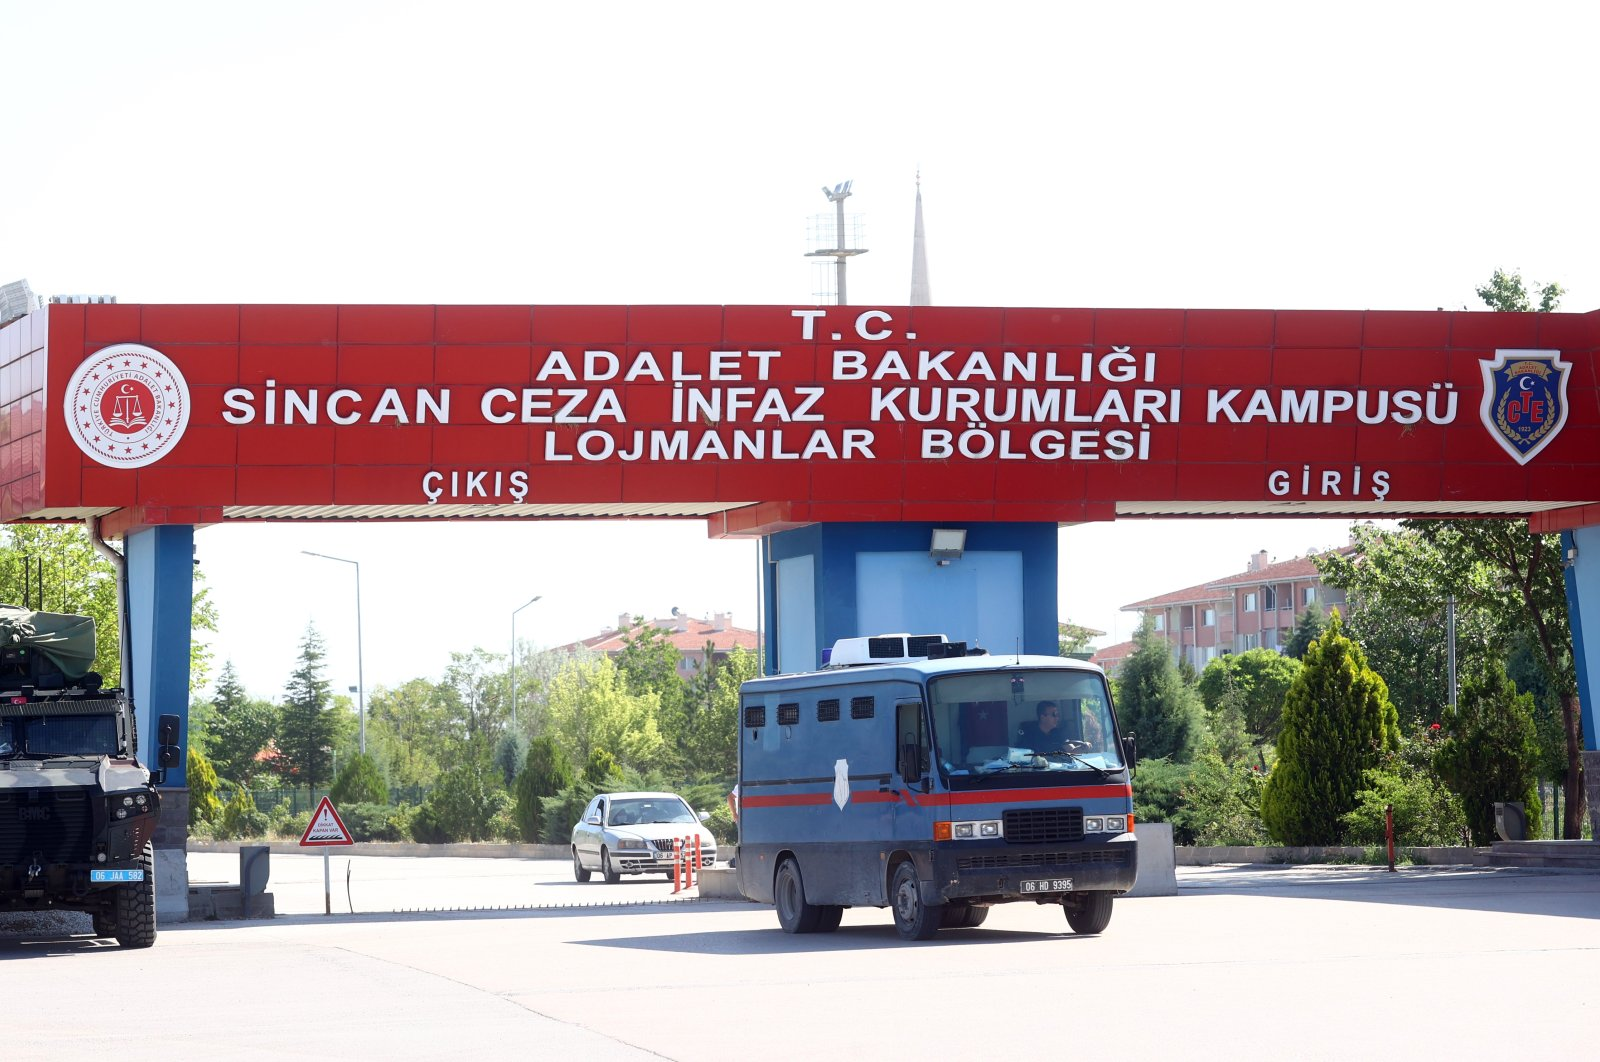 Entrance of a courthouse-prison complex in Sincan district where the trial was held, Ankara, Turkey, June 30, 2021. (AA PHOTO)